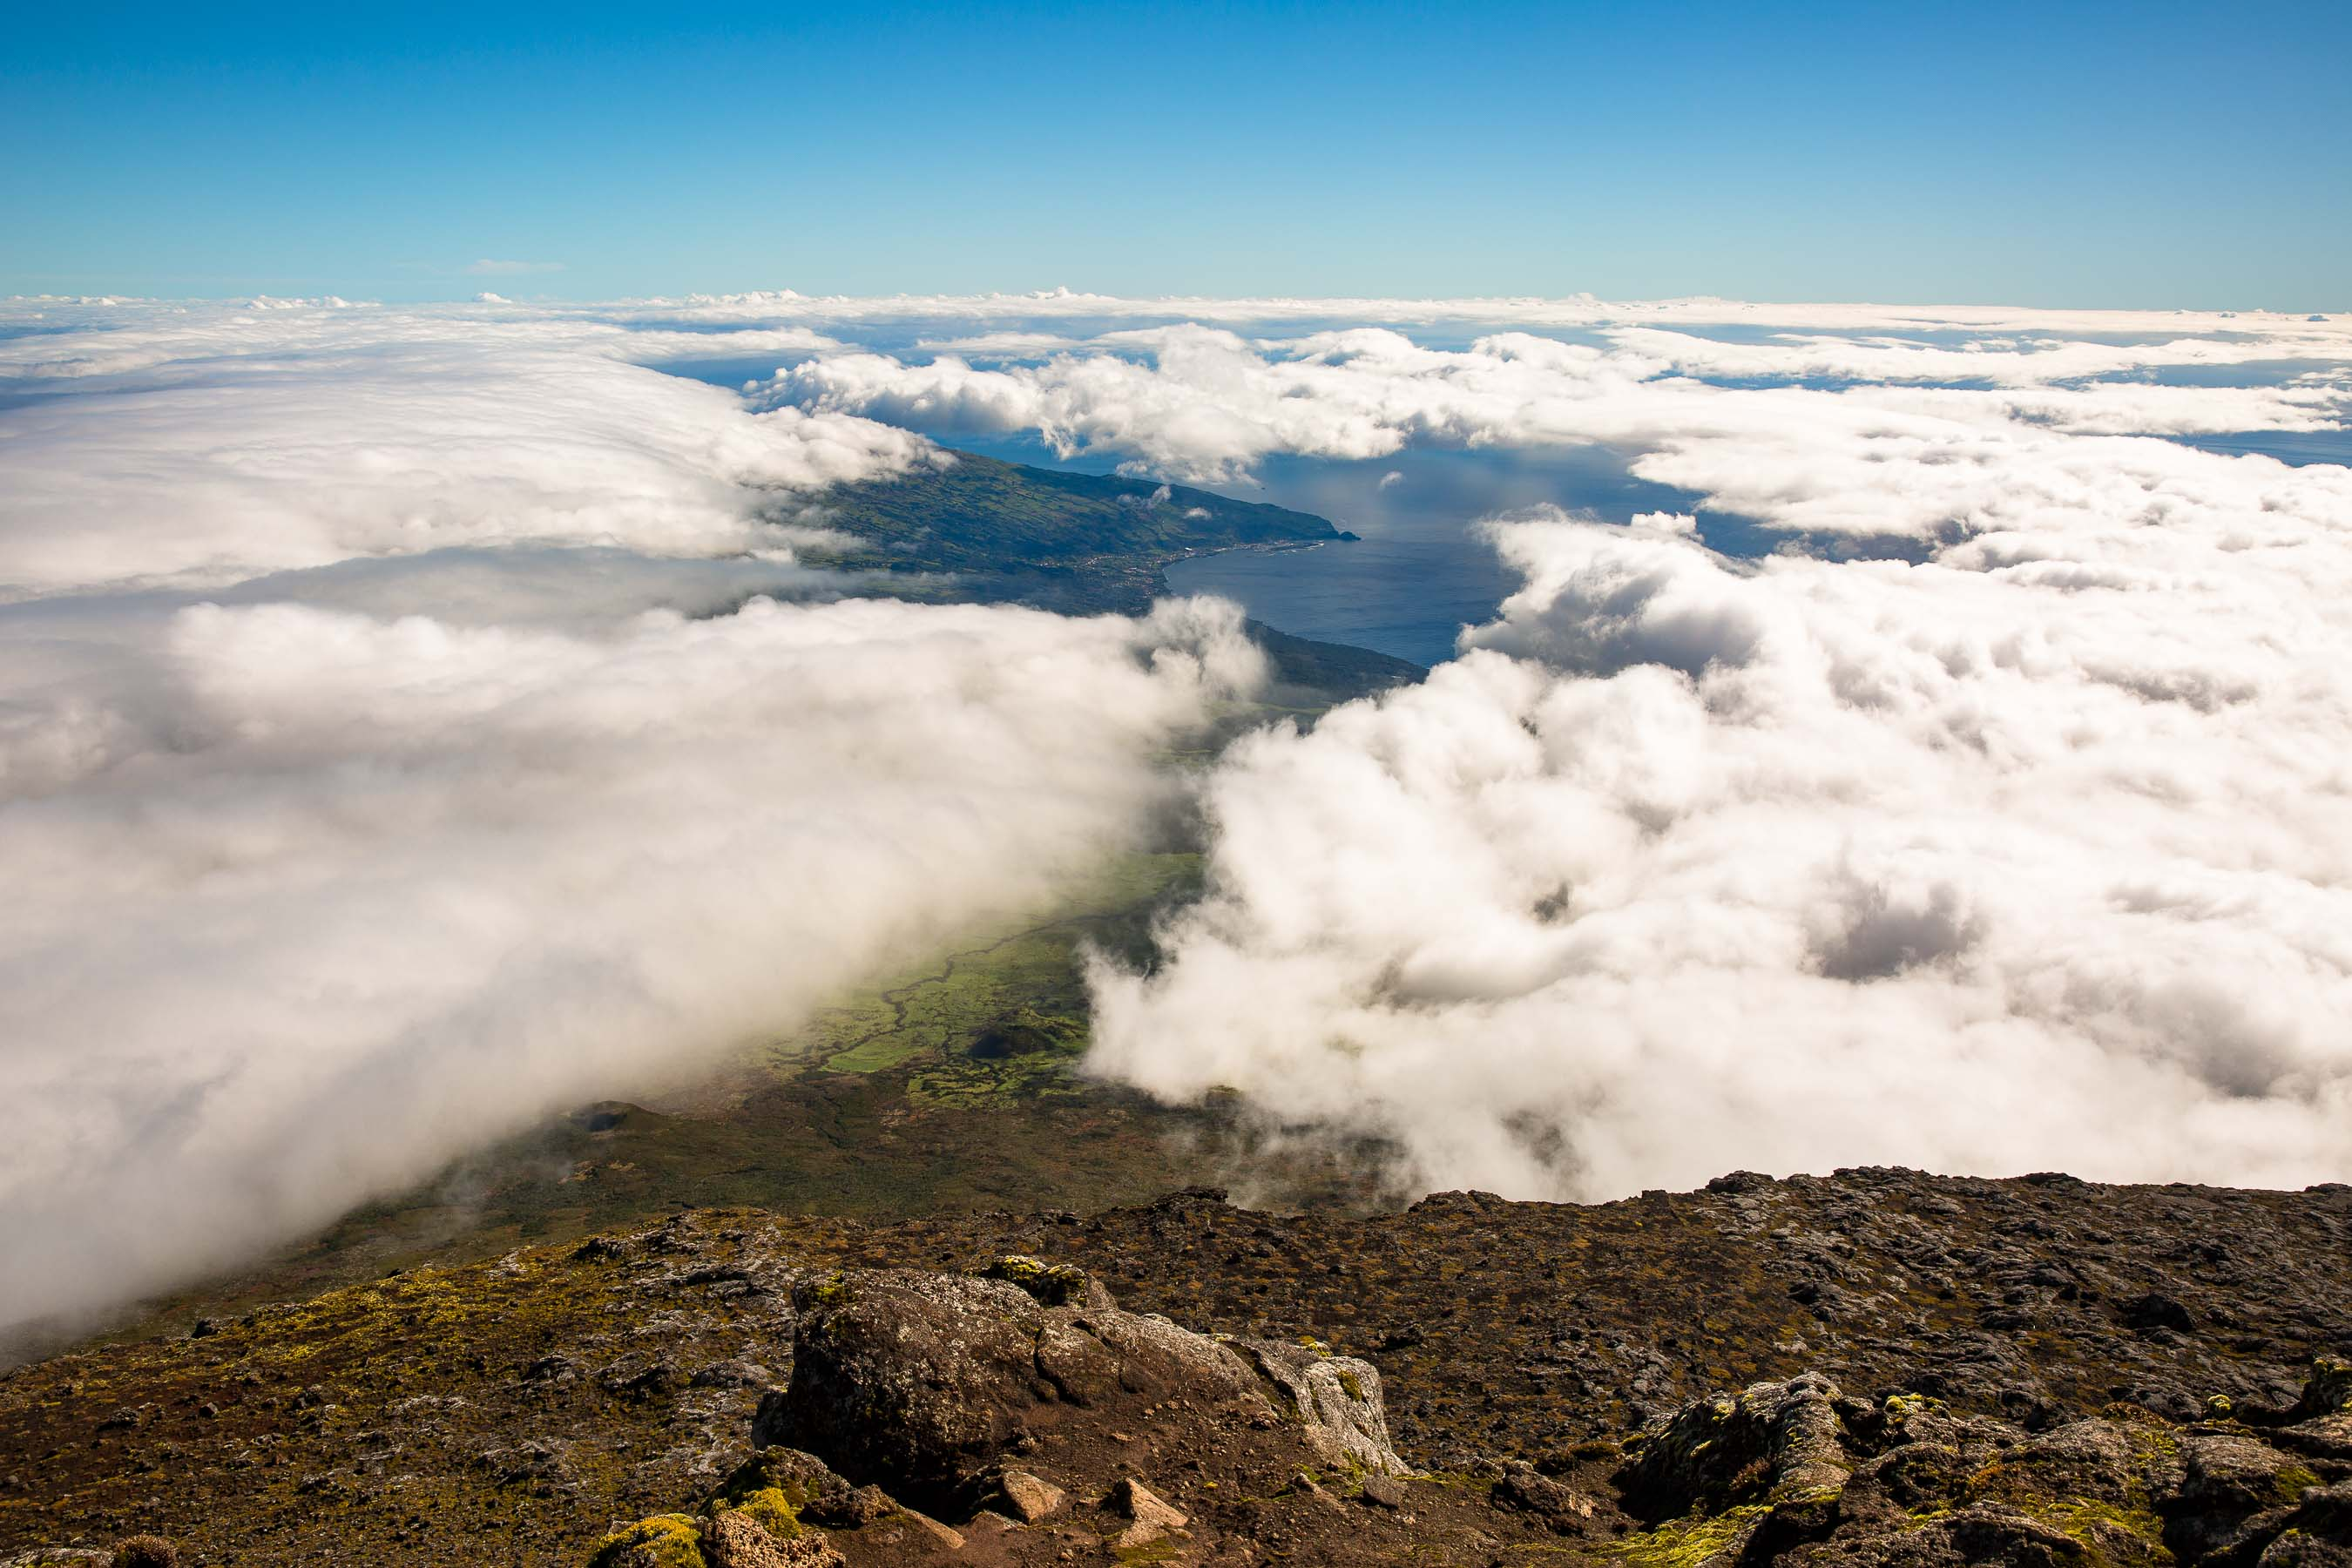 Mount Pico summit above the clouds